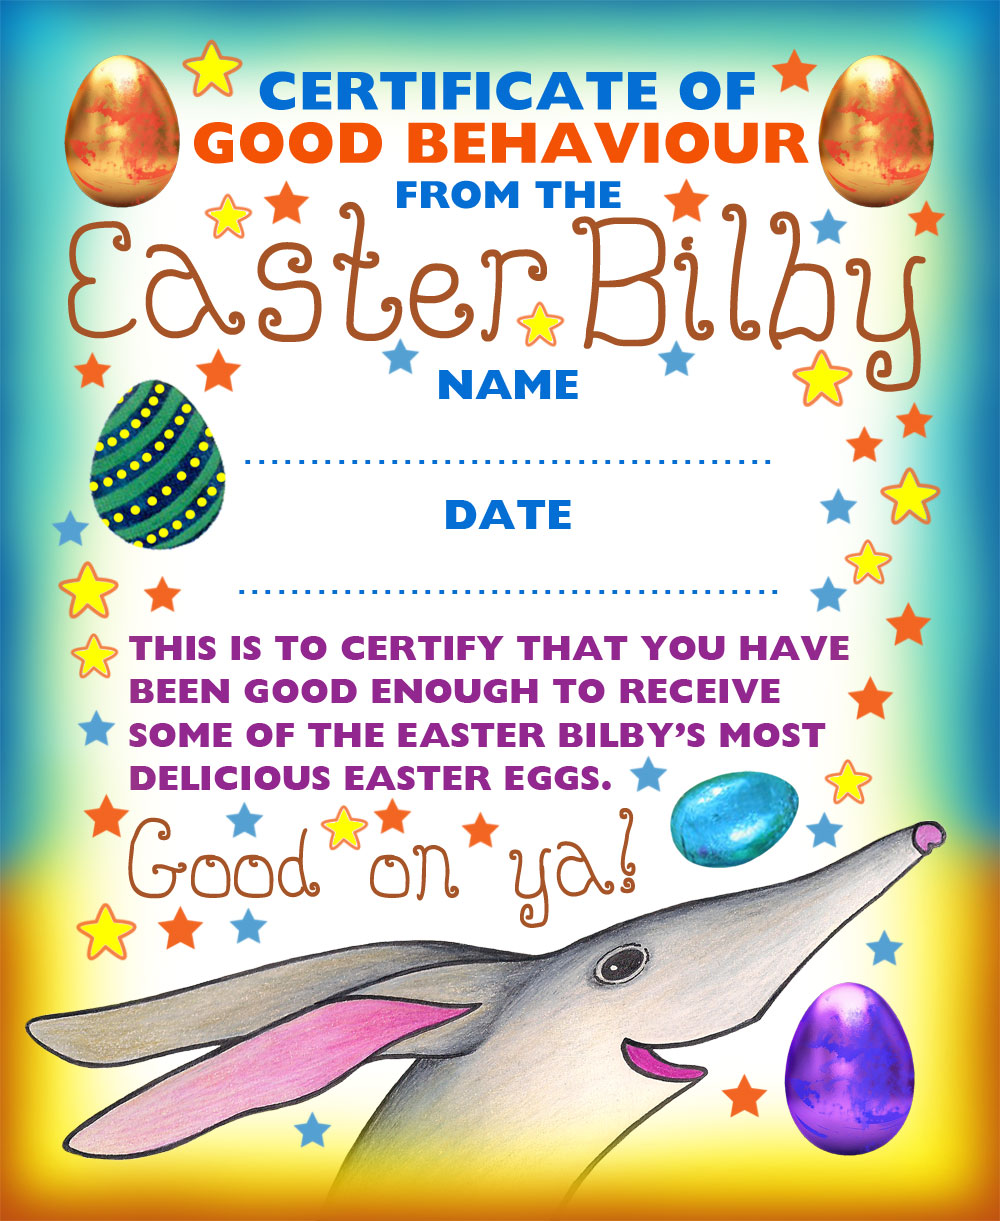 A certificate of good behaviour from the Easter Bilby